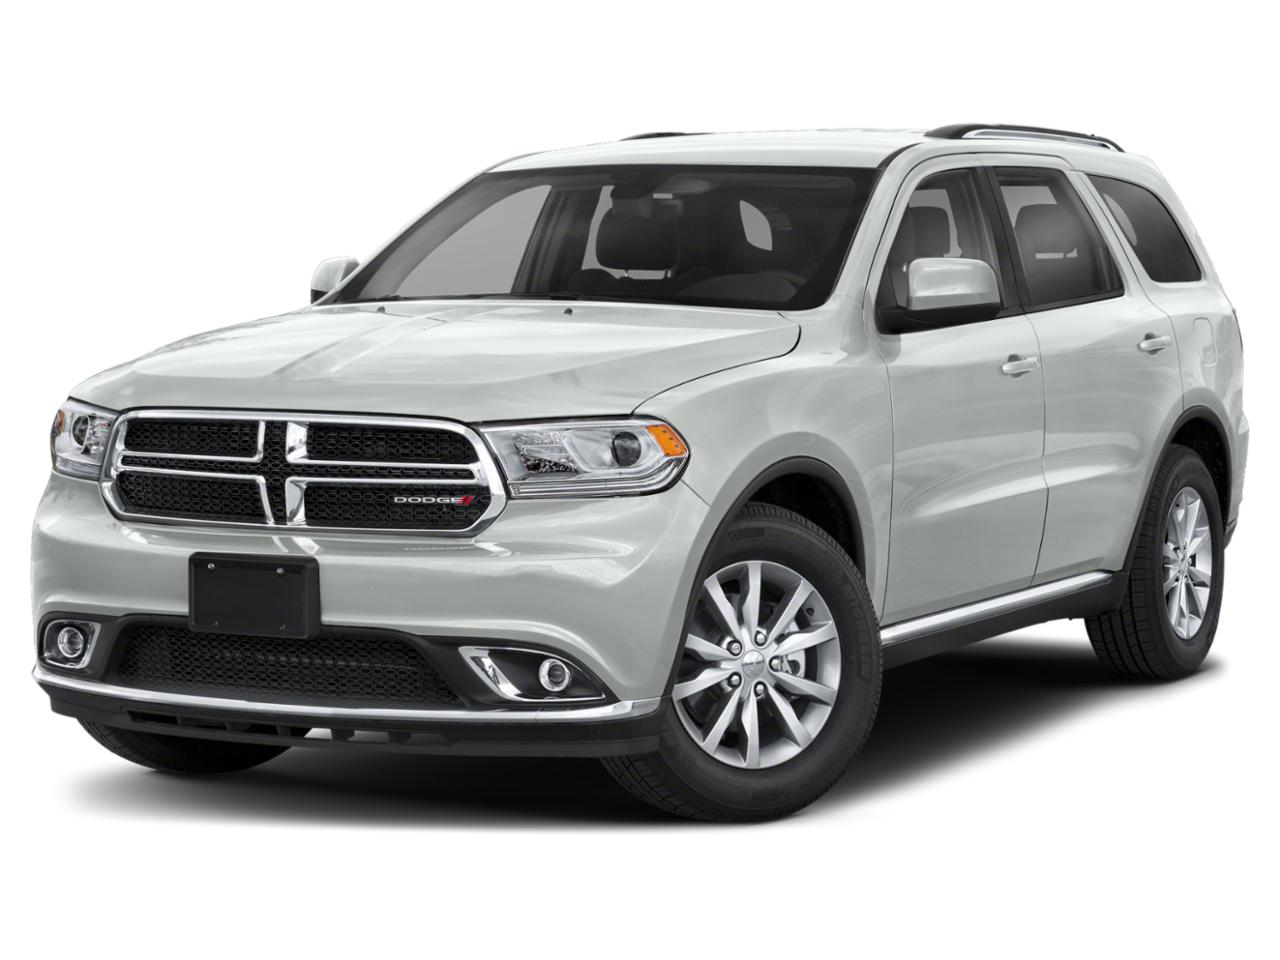 2018 Dodge Durango Vehicle Photo in Gainesville, FL 32609